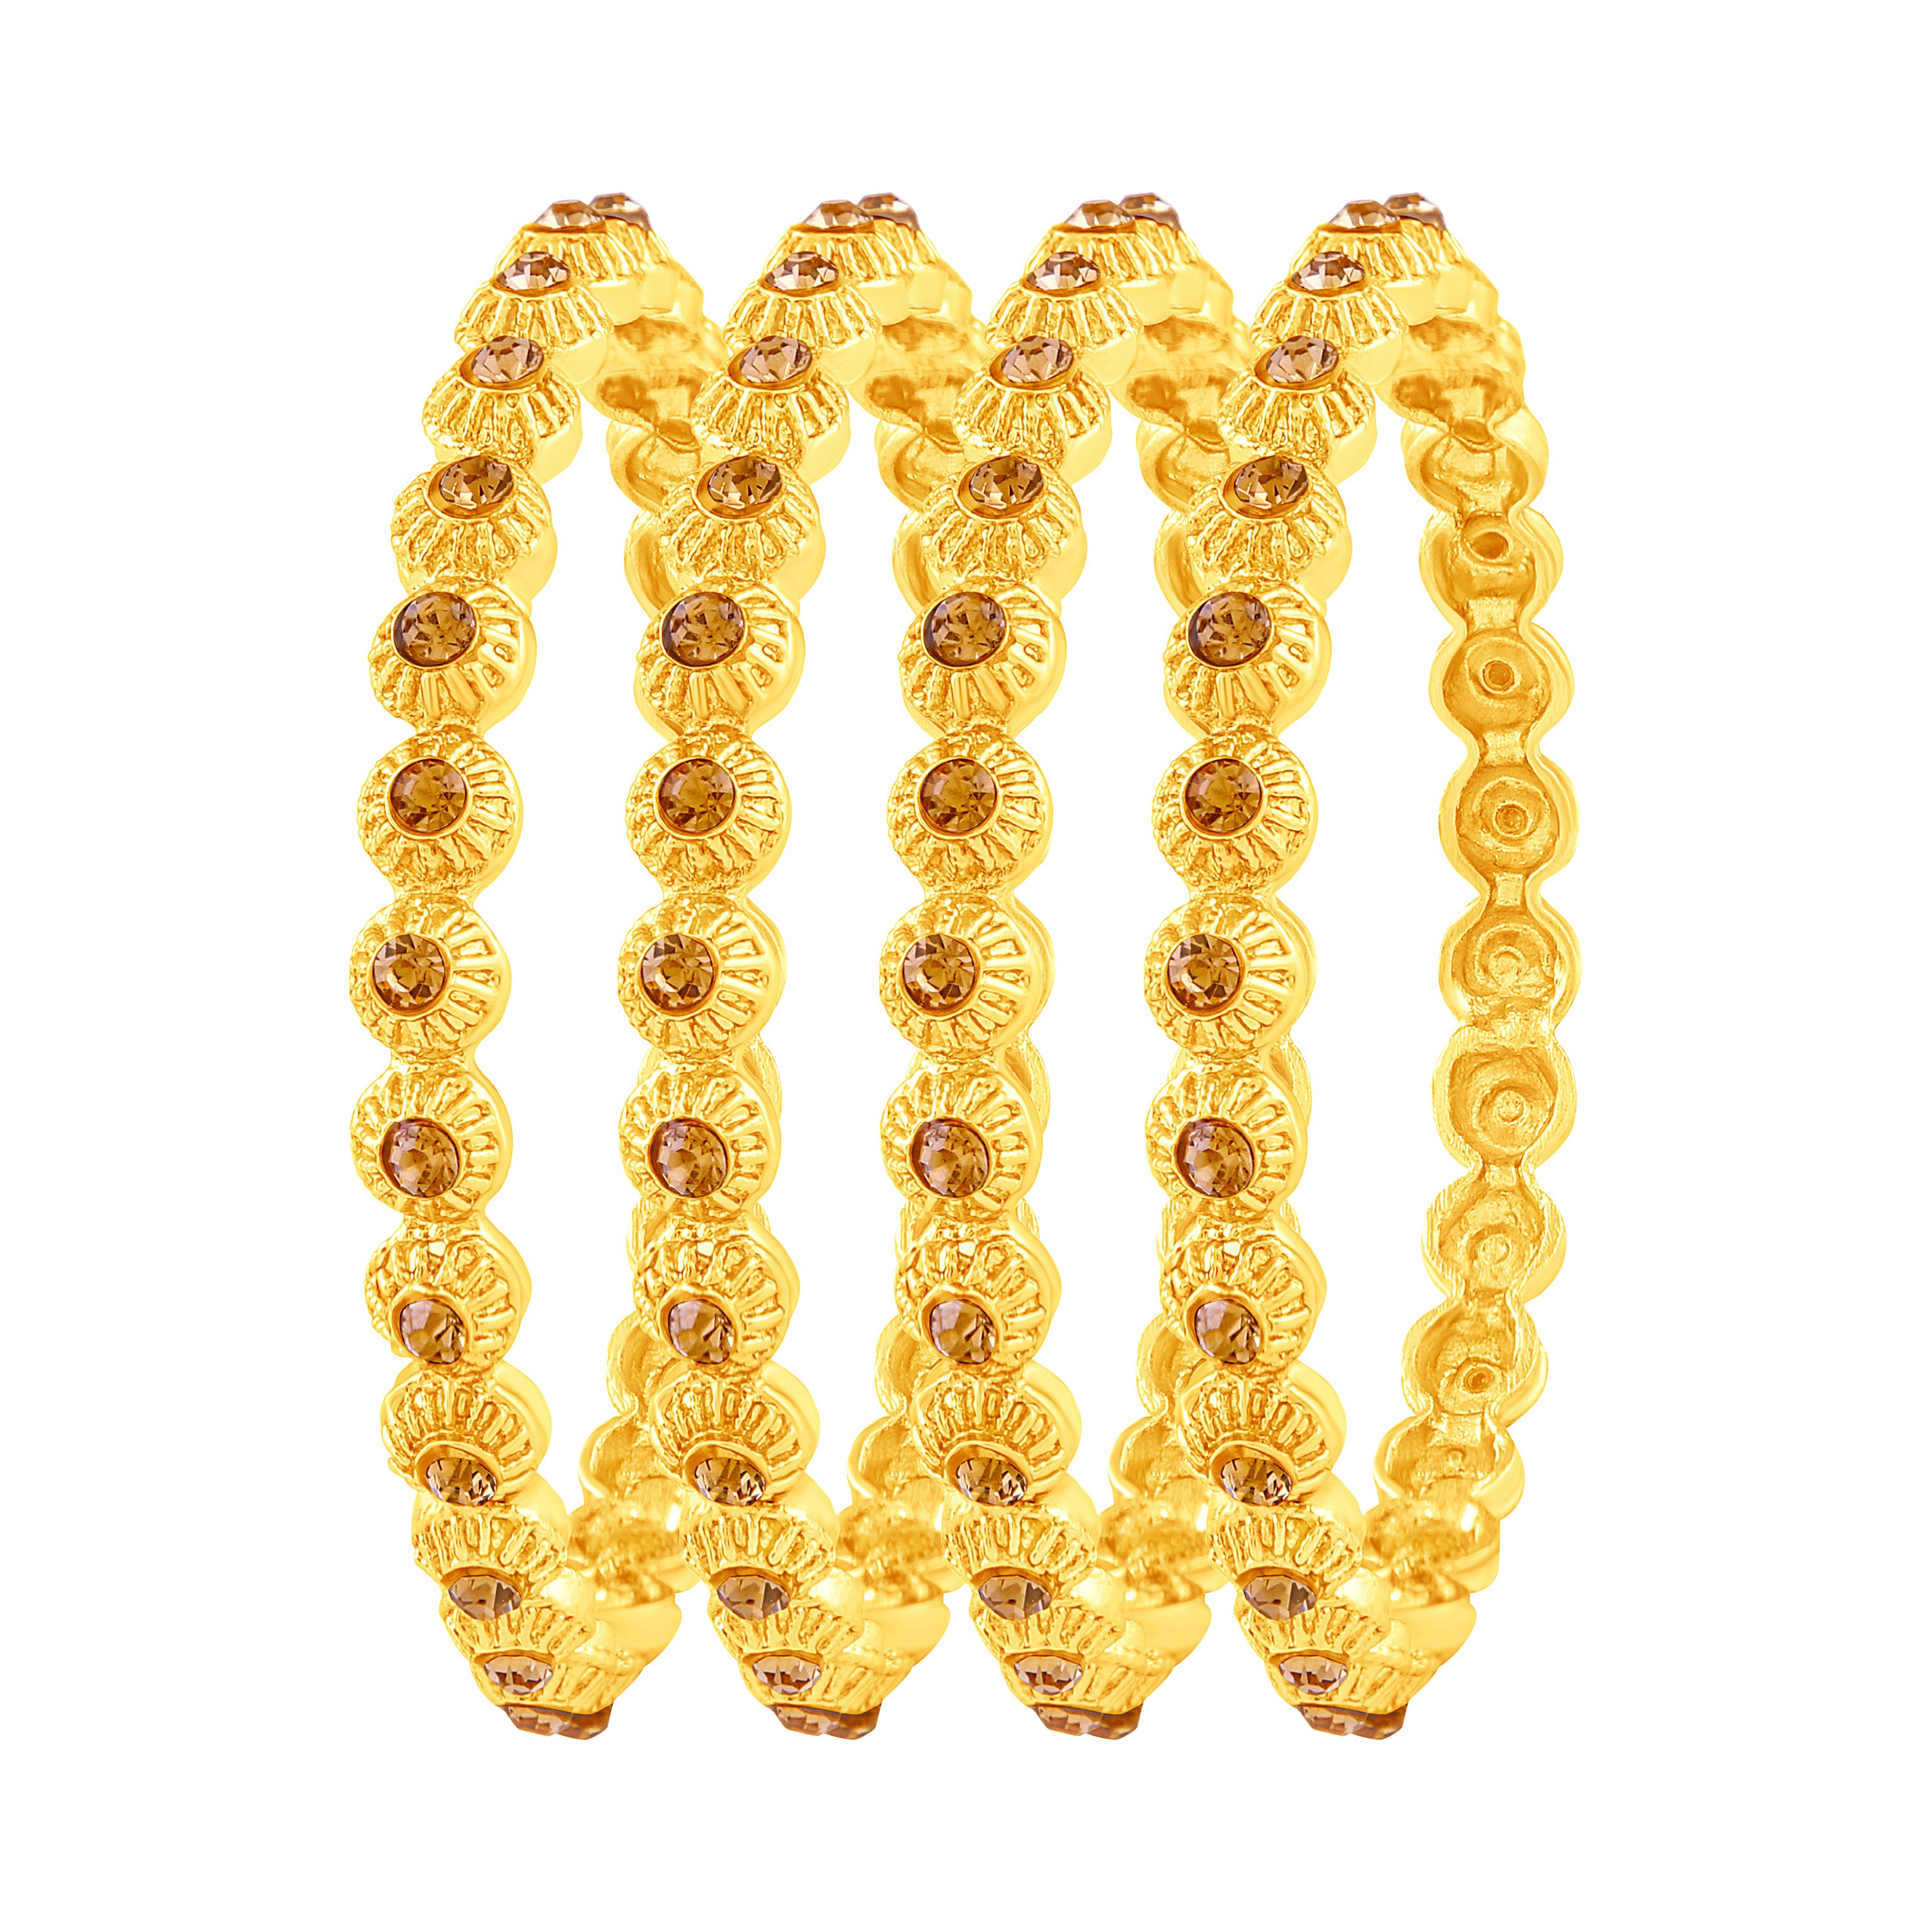 cb2824ed67864 Fancy gold plated austrian stone set of 4 bangles for women